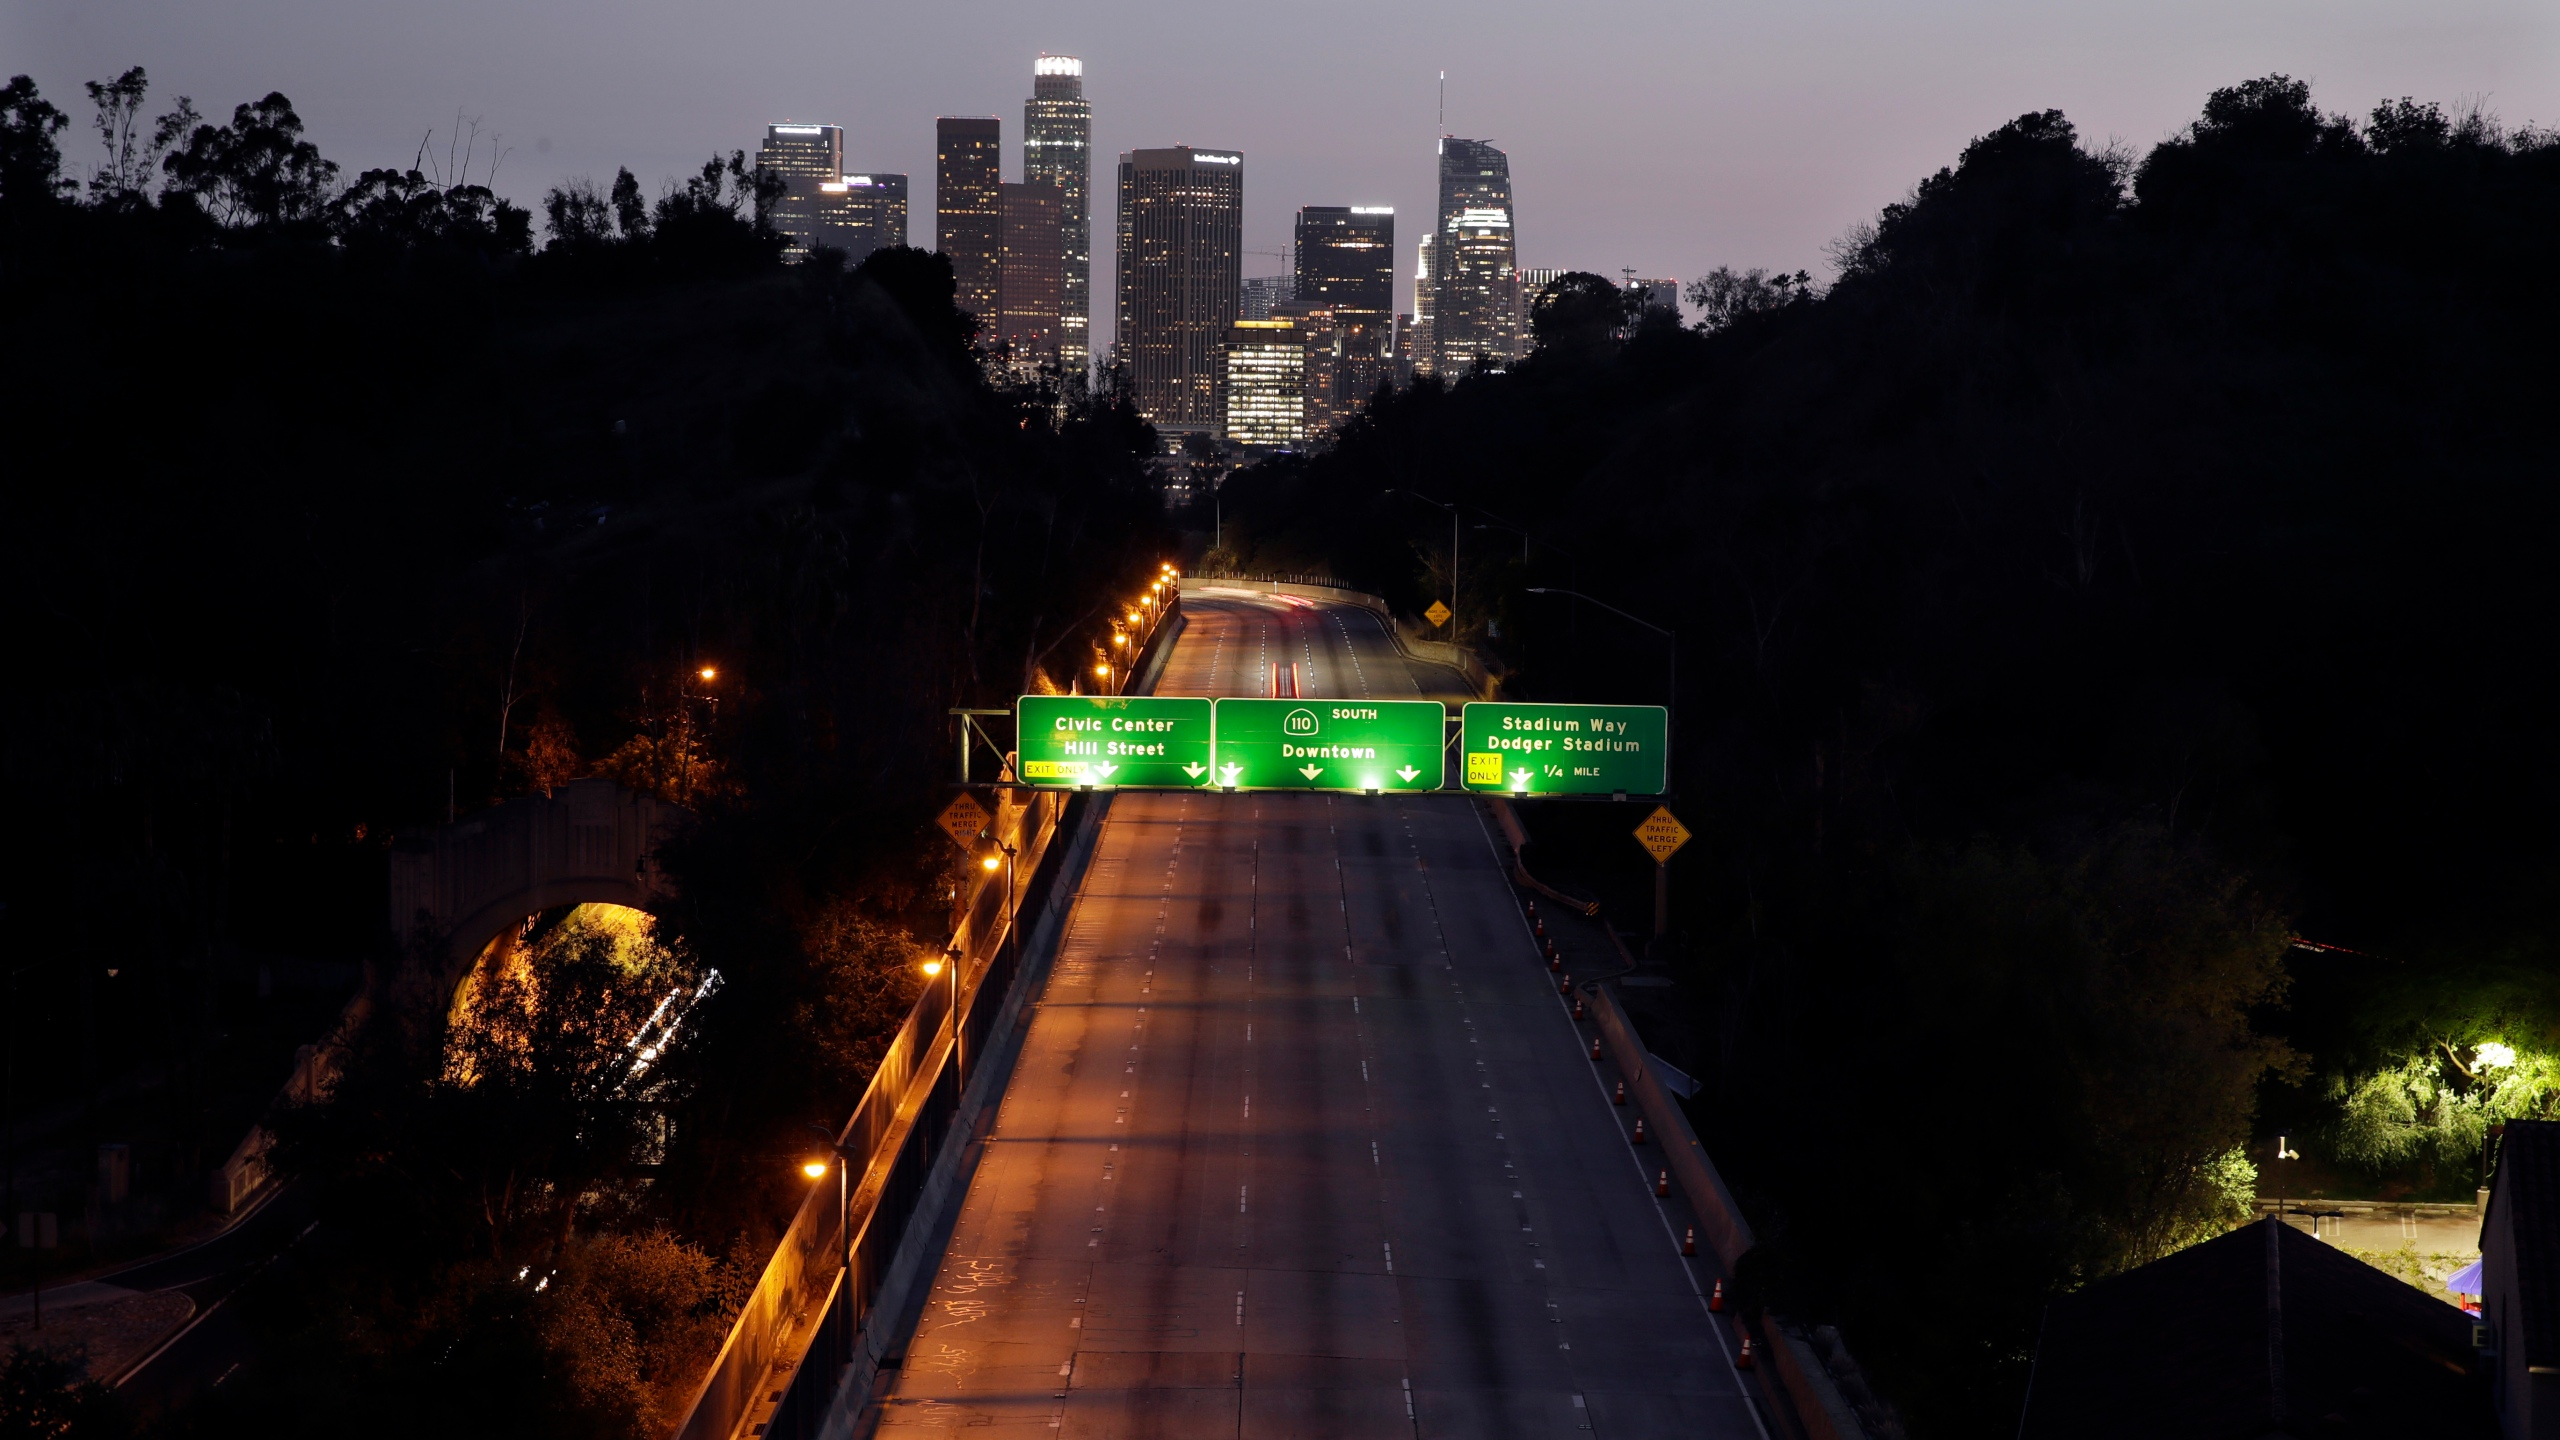 In this April 2, 2020, file photo, light traffic is seen on the 110 freeway with the city skyline in the background in Los Angeles. (AP Photo/Marcio Jose Sanchez, File)